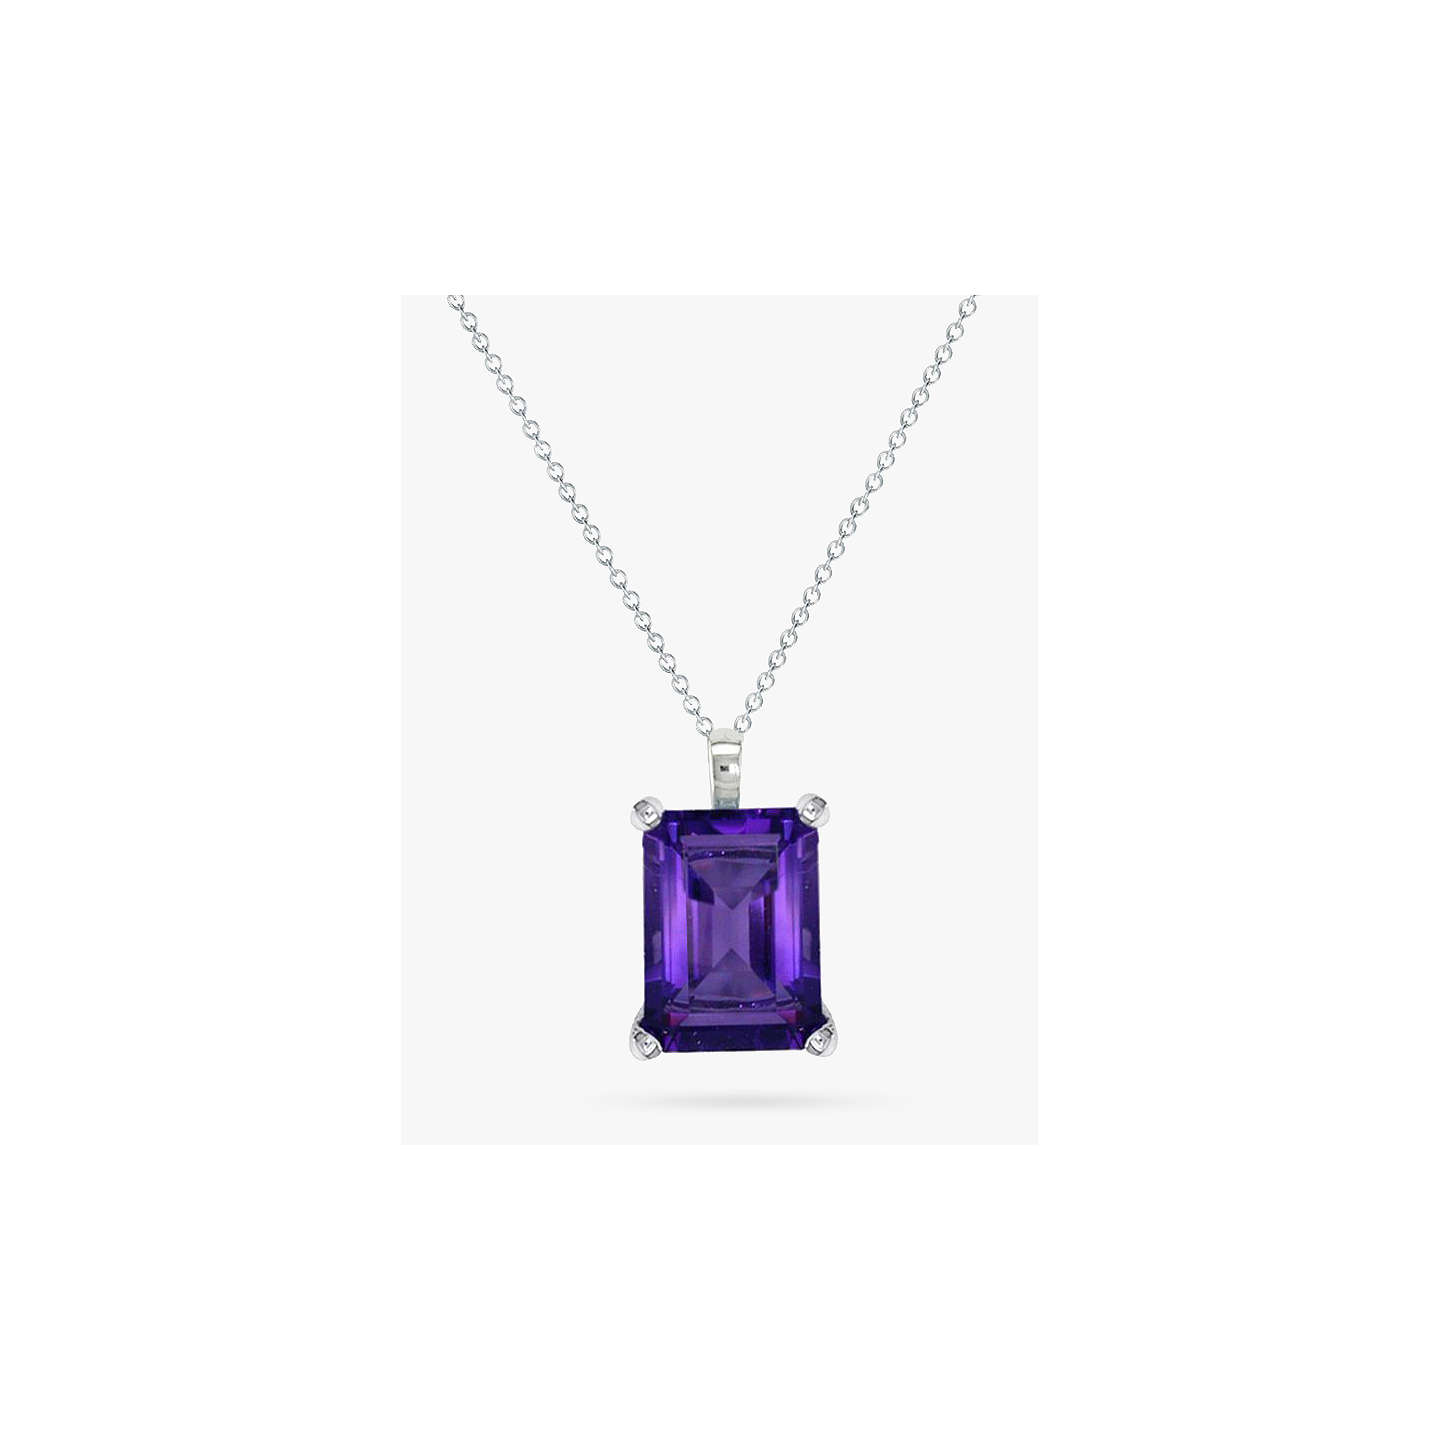 BuyEWA 9ct White Gold Baguette Pendant Necklace, Amethyst Online at johnlewis.com